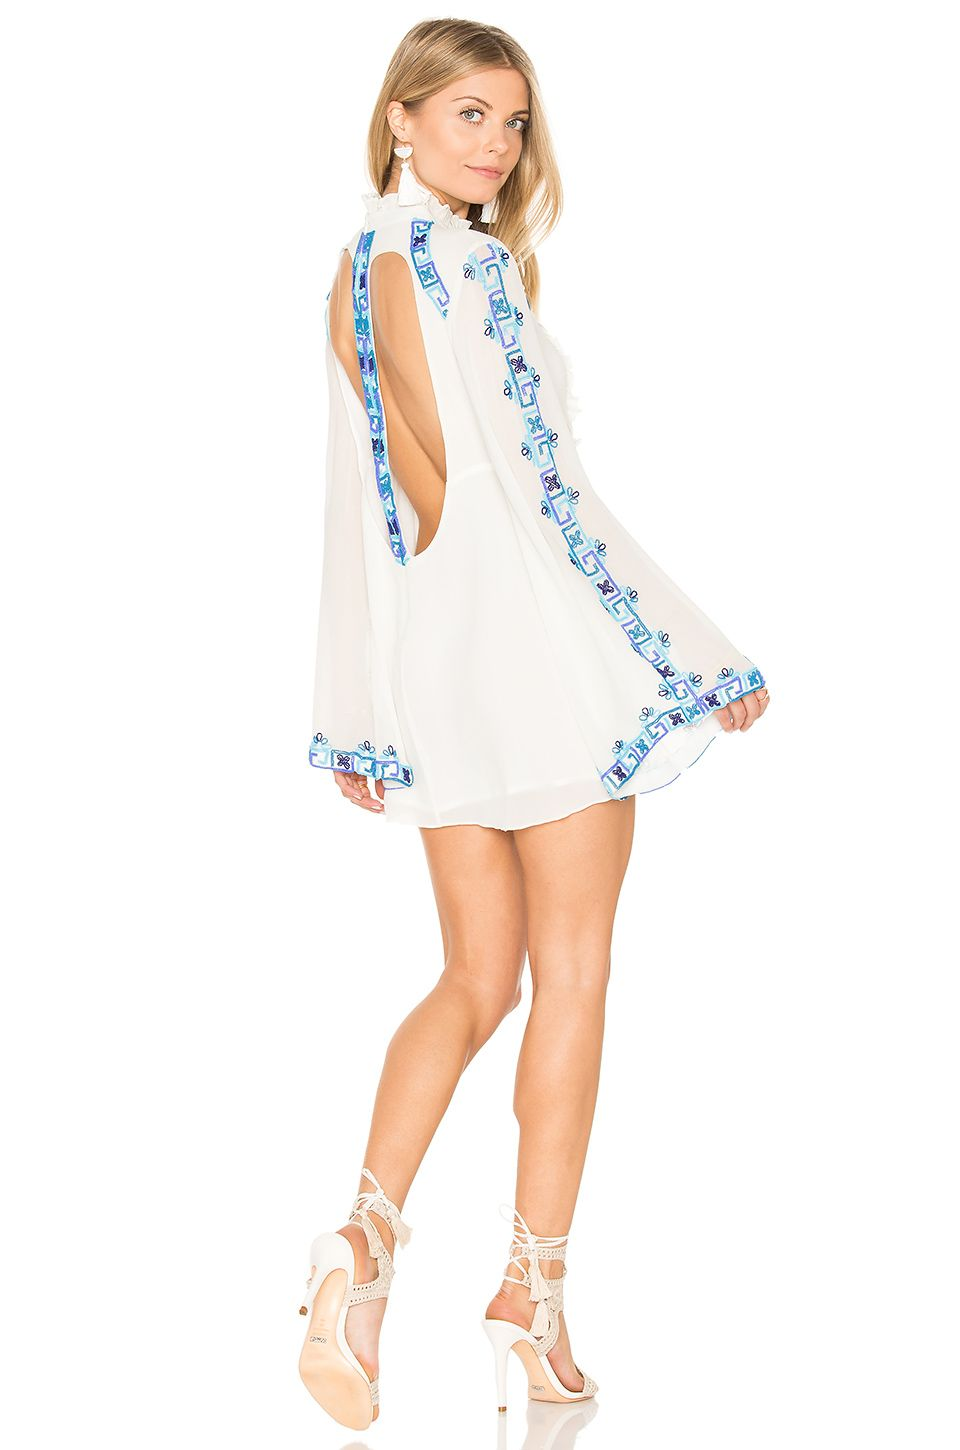 Rococo Sand Long Sleeve Mini Dress In Cobalt Revolve Long Sleeve Mini Dress Mini Dress White Long Sleeve Dress Kohl's carries all of the dress colors that you need to coordinate your look, including white long sleeve casual dresses with long sleeves are a great option for going out or for a day at the office. pinterest